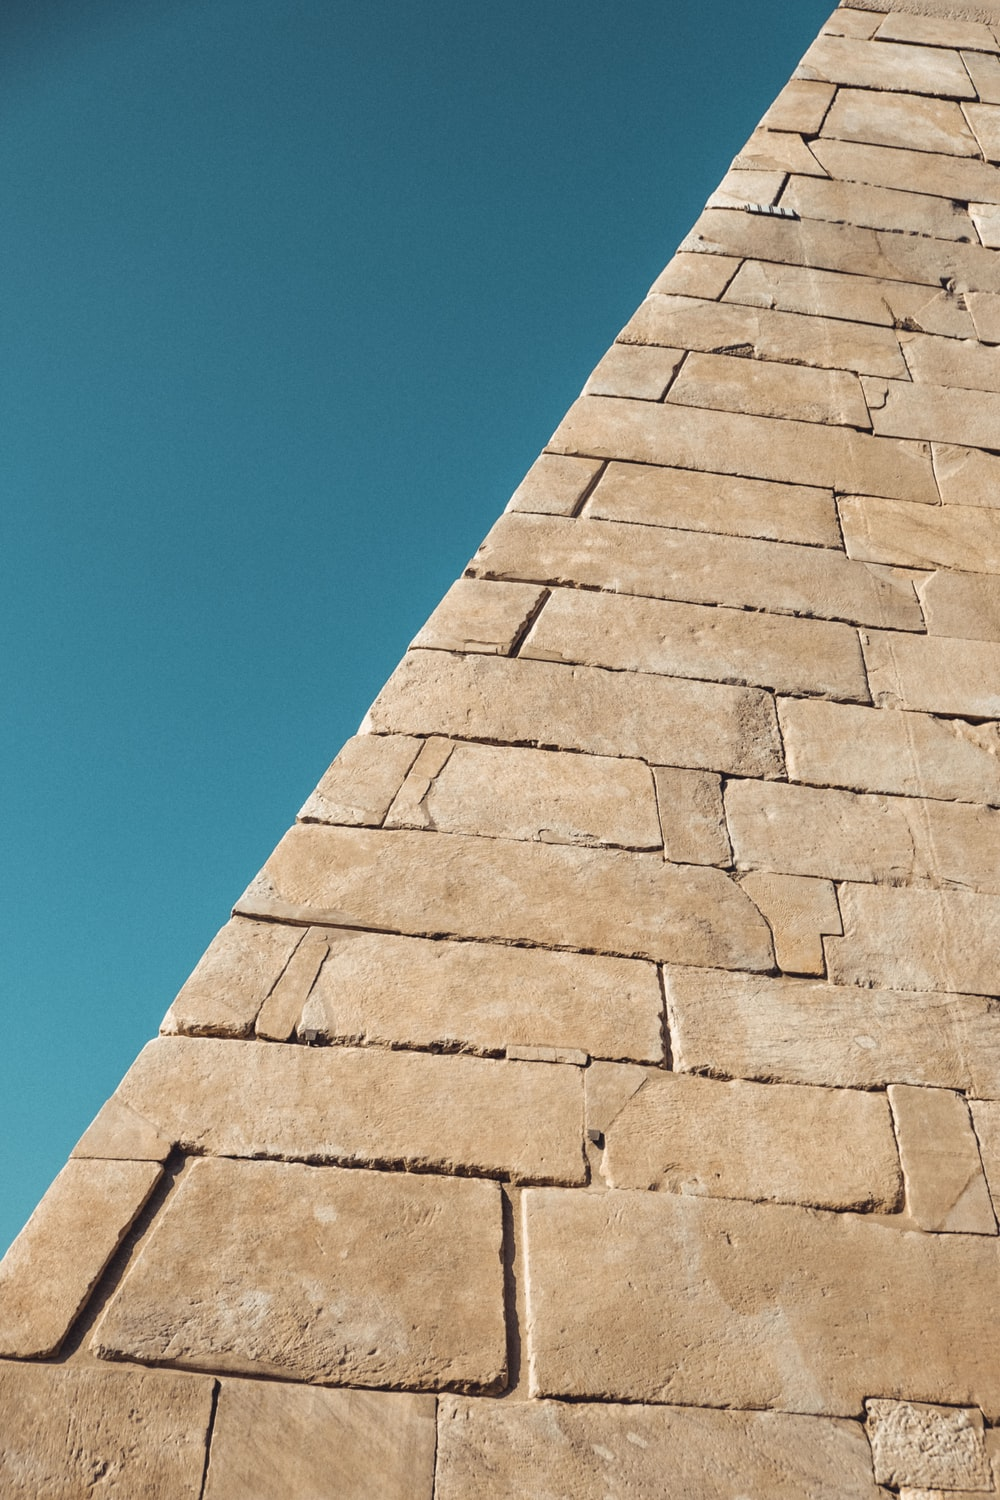 brown brick wall under blue sky during daytime